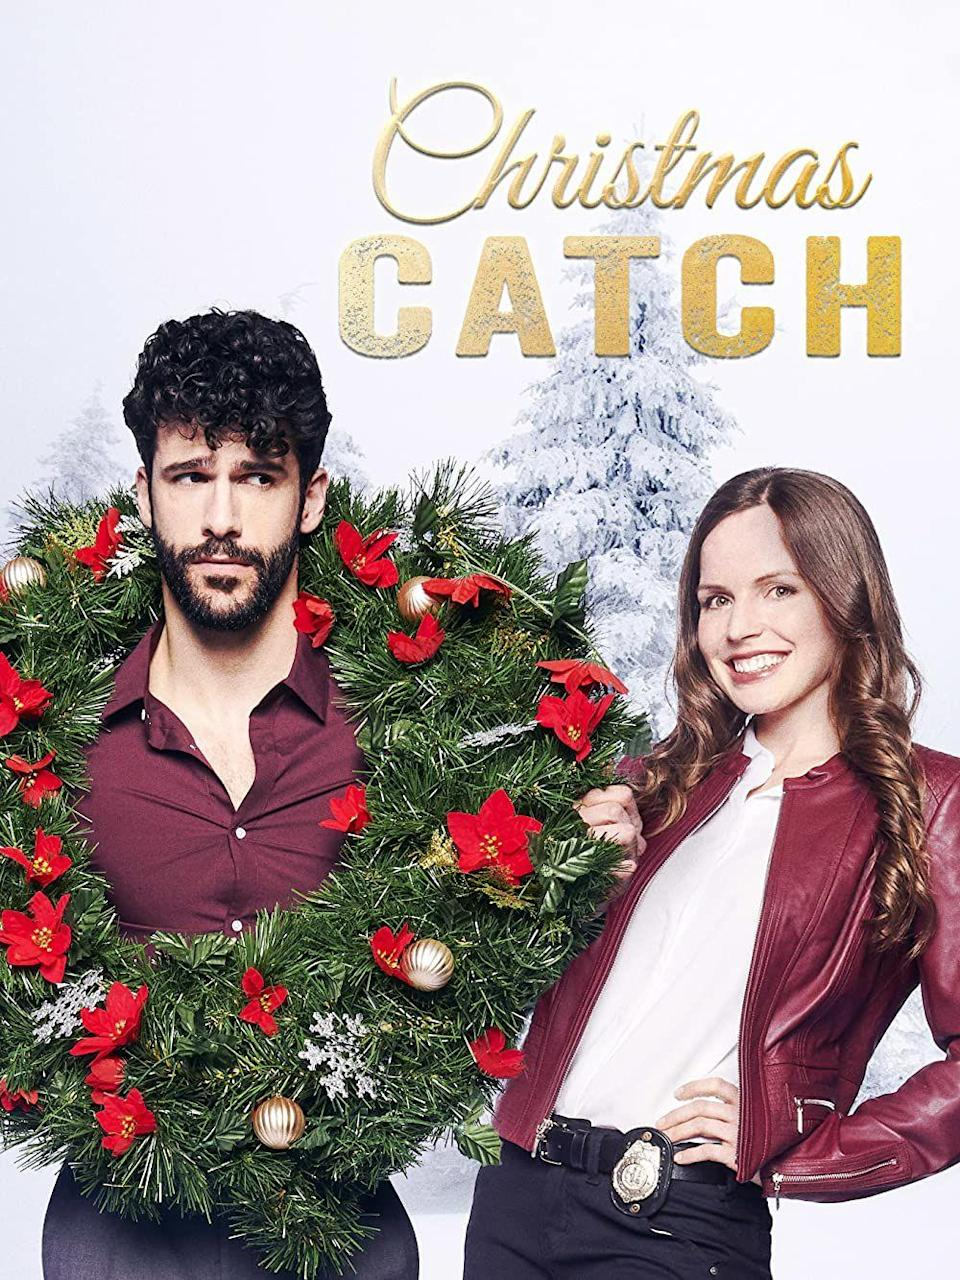 """<p>Serious police detective Mackenzie Bennett can't be knocked off her game or her case to recover a stolen diamond encrusted reindeer (because this is a holiday detective movie)—unless, of course, the thief is an attractive man who she already literally fell for. Expect sparks and hijinks to ensue when Mackenzie tries to close this case before Christmas.</p><p><a class=""""link rapid-noclick-resp"""" href=""""https://www.netflix.com/title/81319146"""" rel=""""nofollow noopener"""" target=""""_blank"""" data-ylk=""""slk:Watch Now"""">Watch Now</a></p>"""